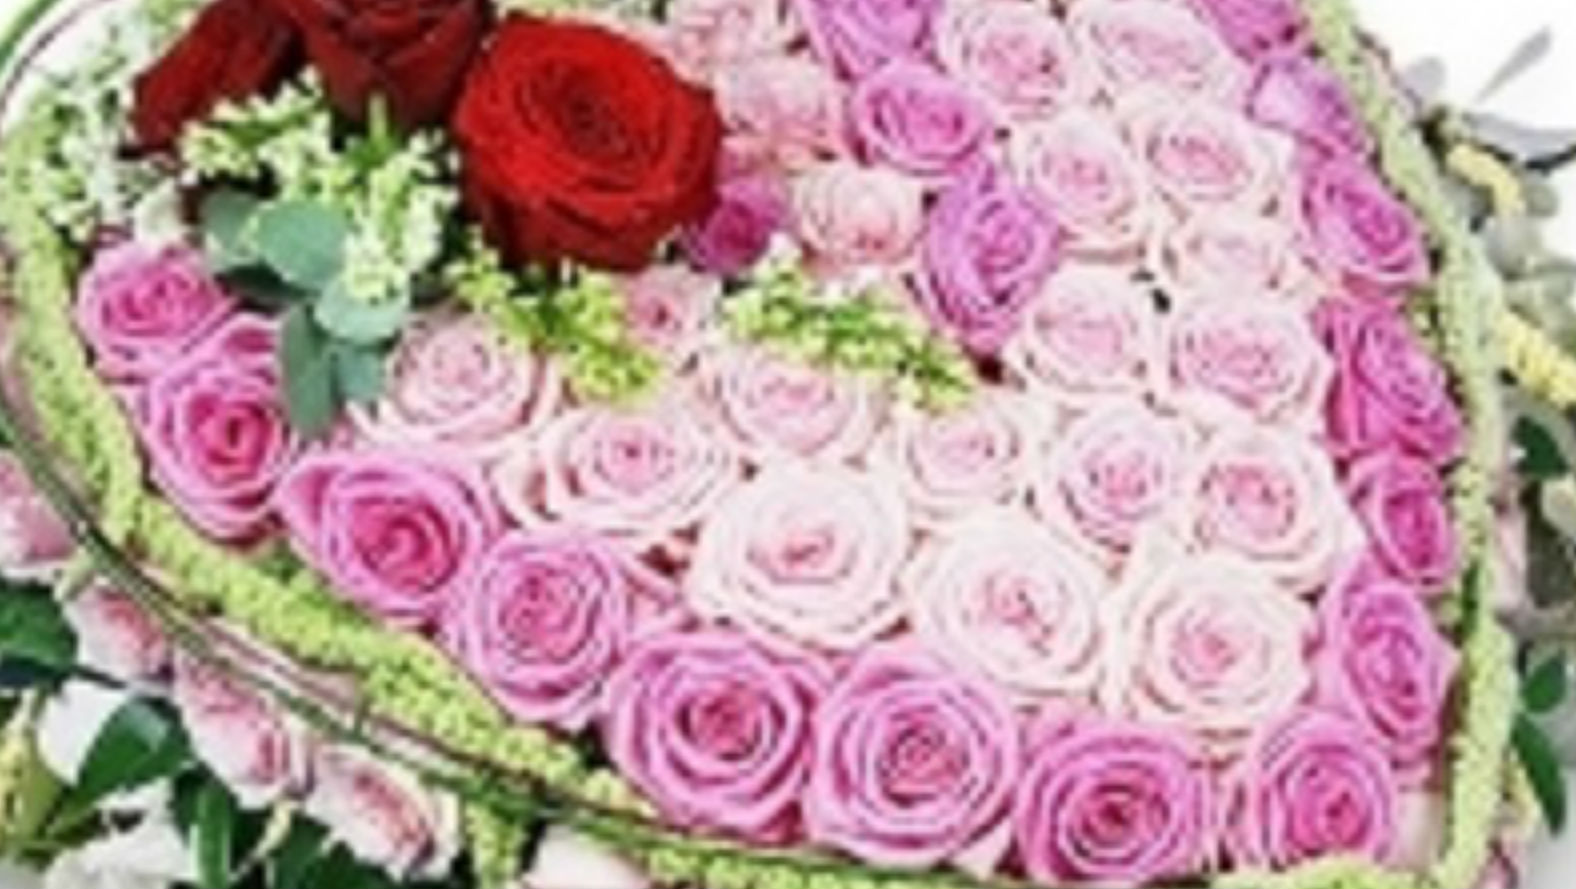 pink-and-red-roses-truibute-flower-station.jpg